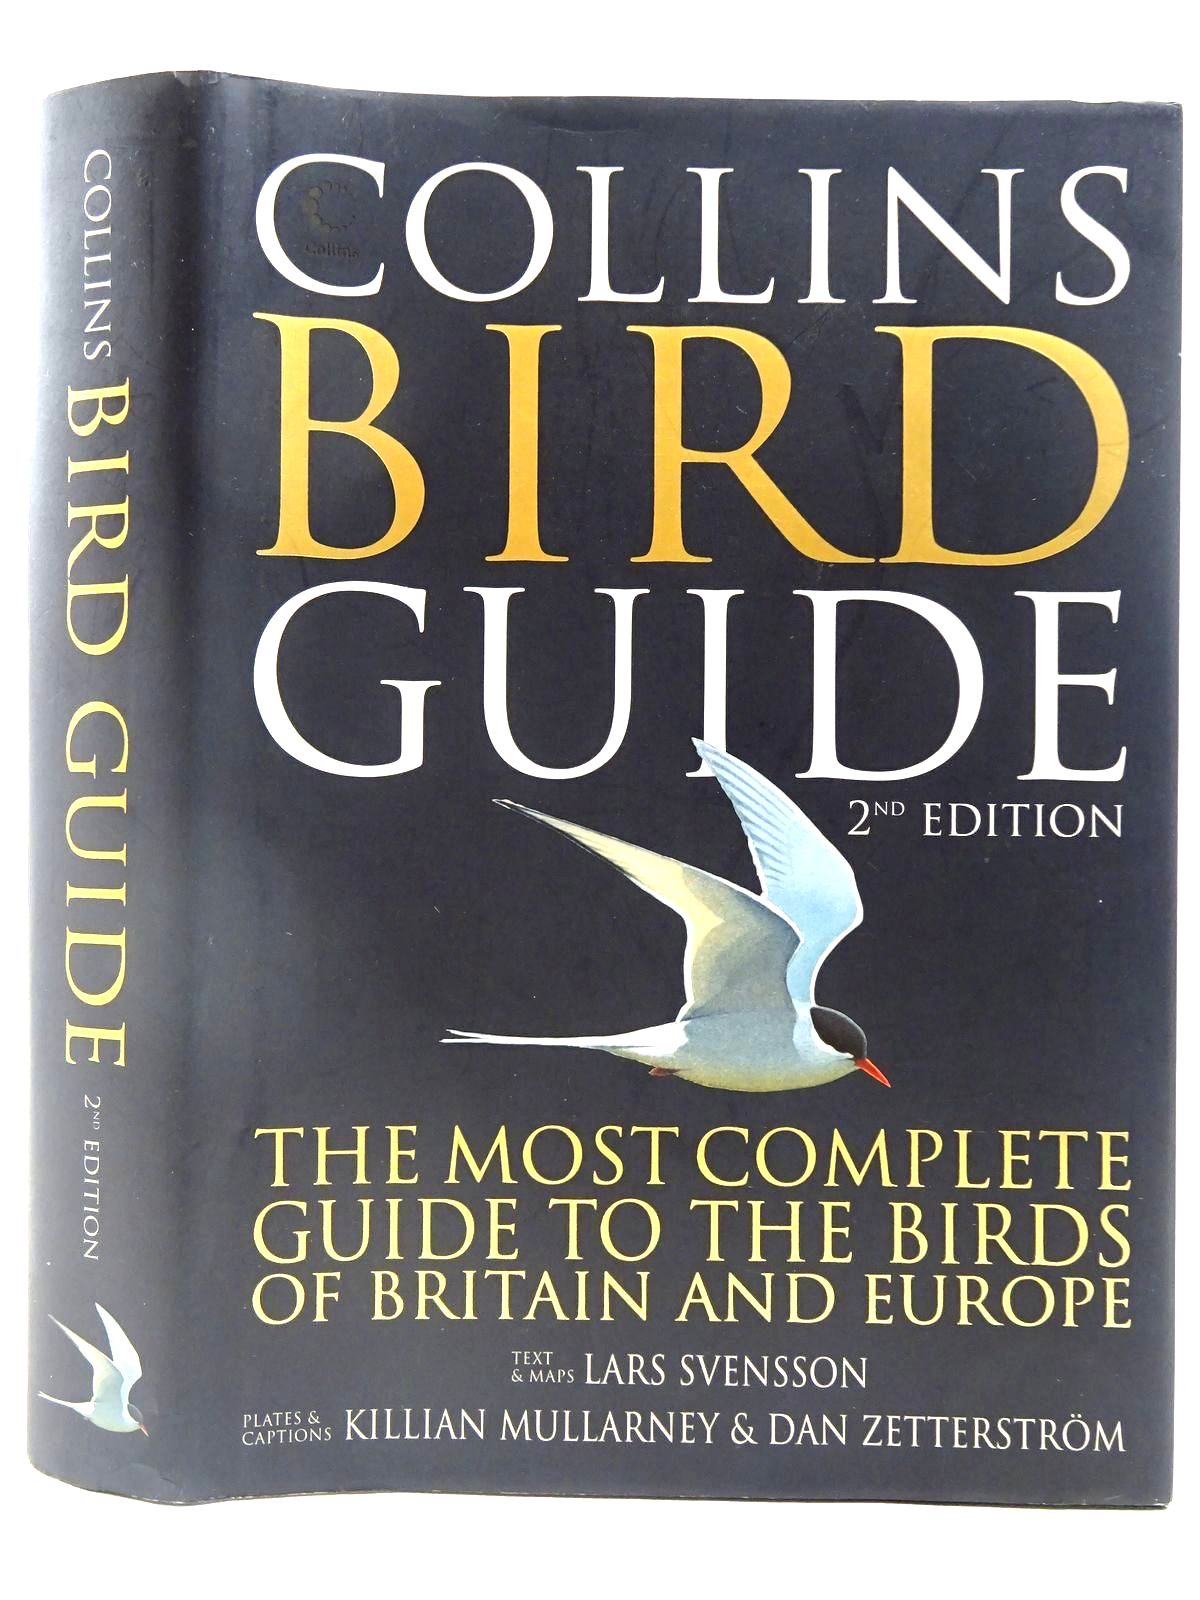 Photo of COLLINS BIRD GUIDE written by Svensson, Lars<br />Grant, Peter J. illustrated by Mullarney, Killian<br />Zetterstrom, Dan published by Harper Collins (STOCK CODE: 2127748)  for sale by Stella & Rose's Books